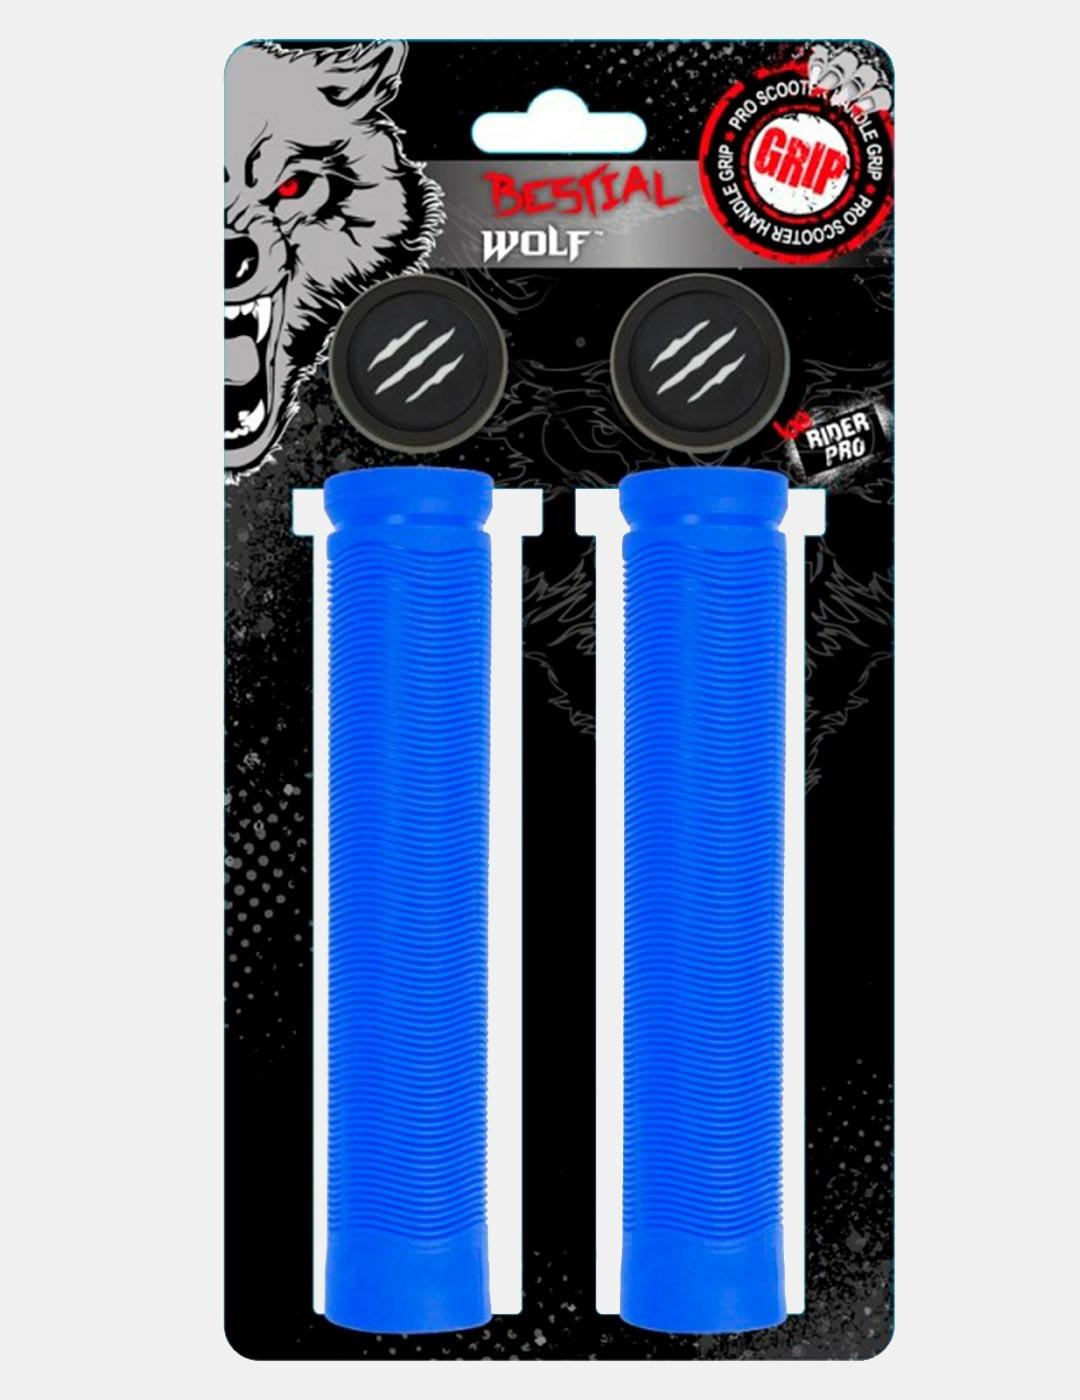 Manguitos Scooter BESTIAL WOLF RS81 155MM - Azul